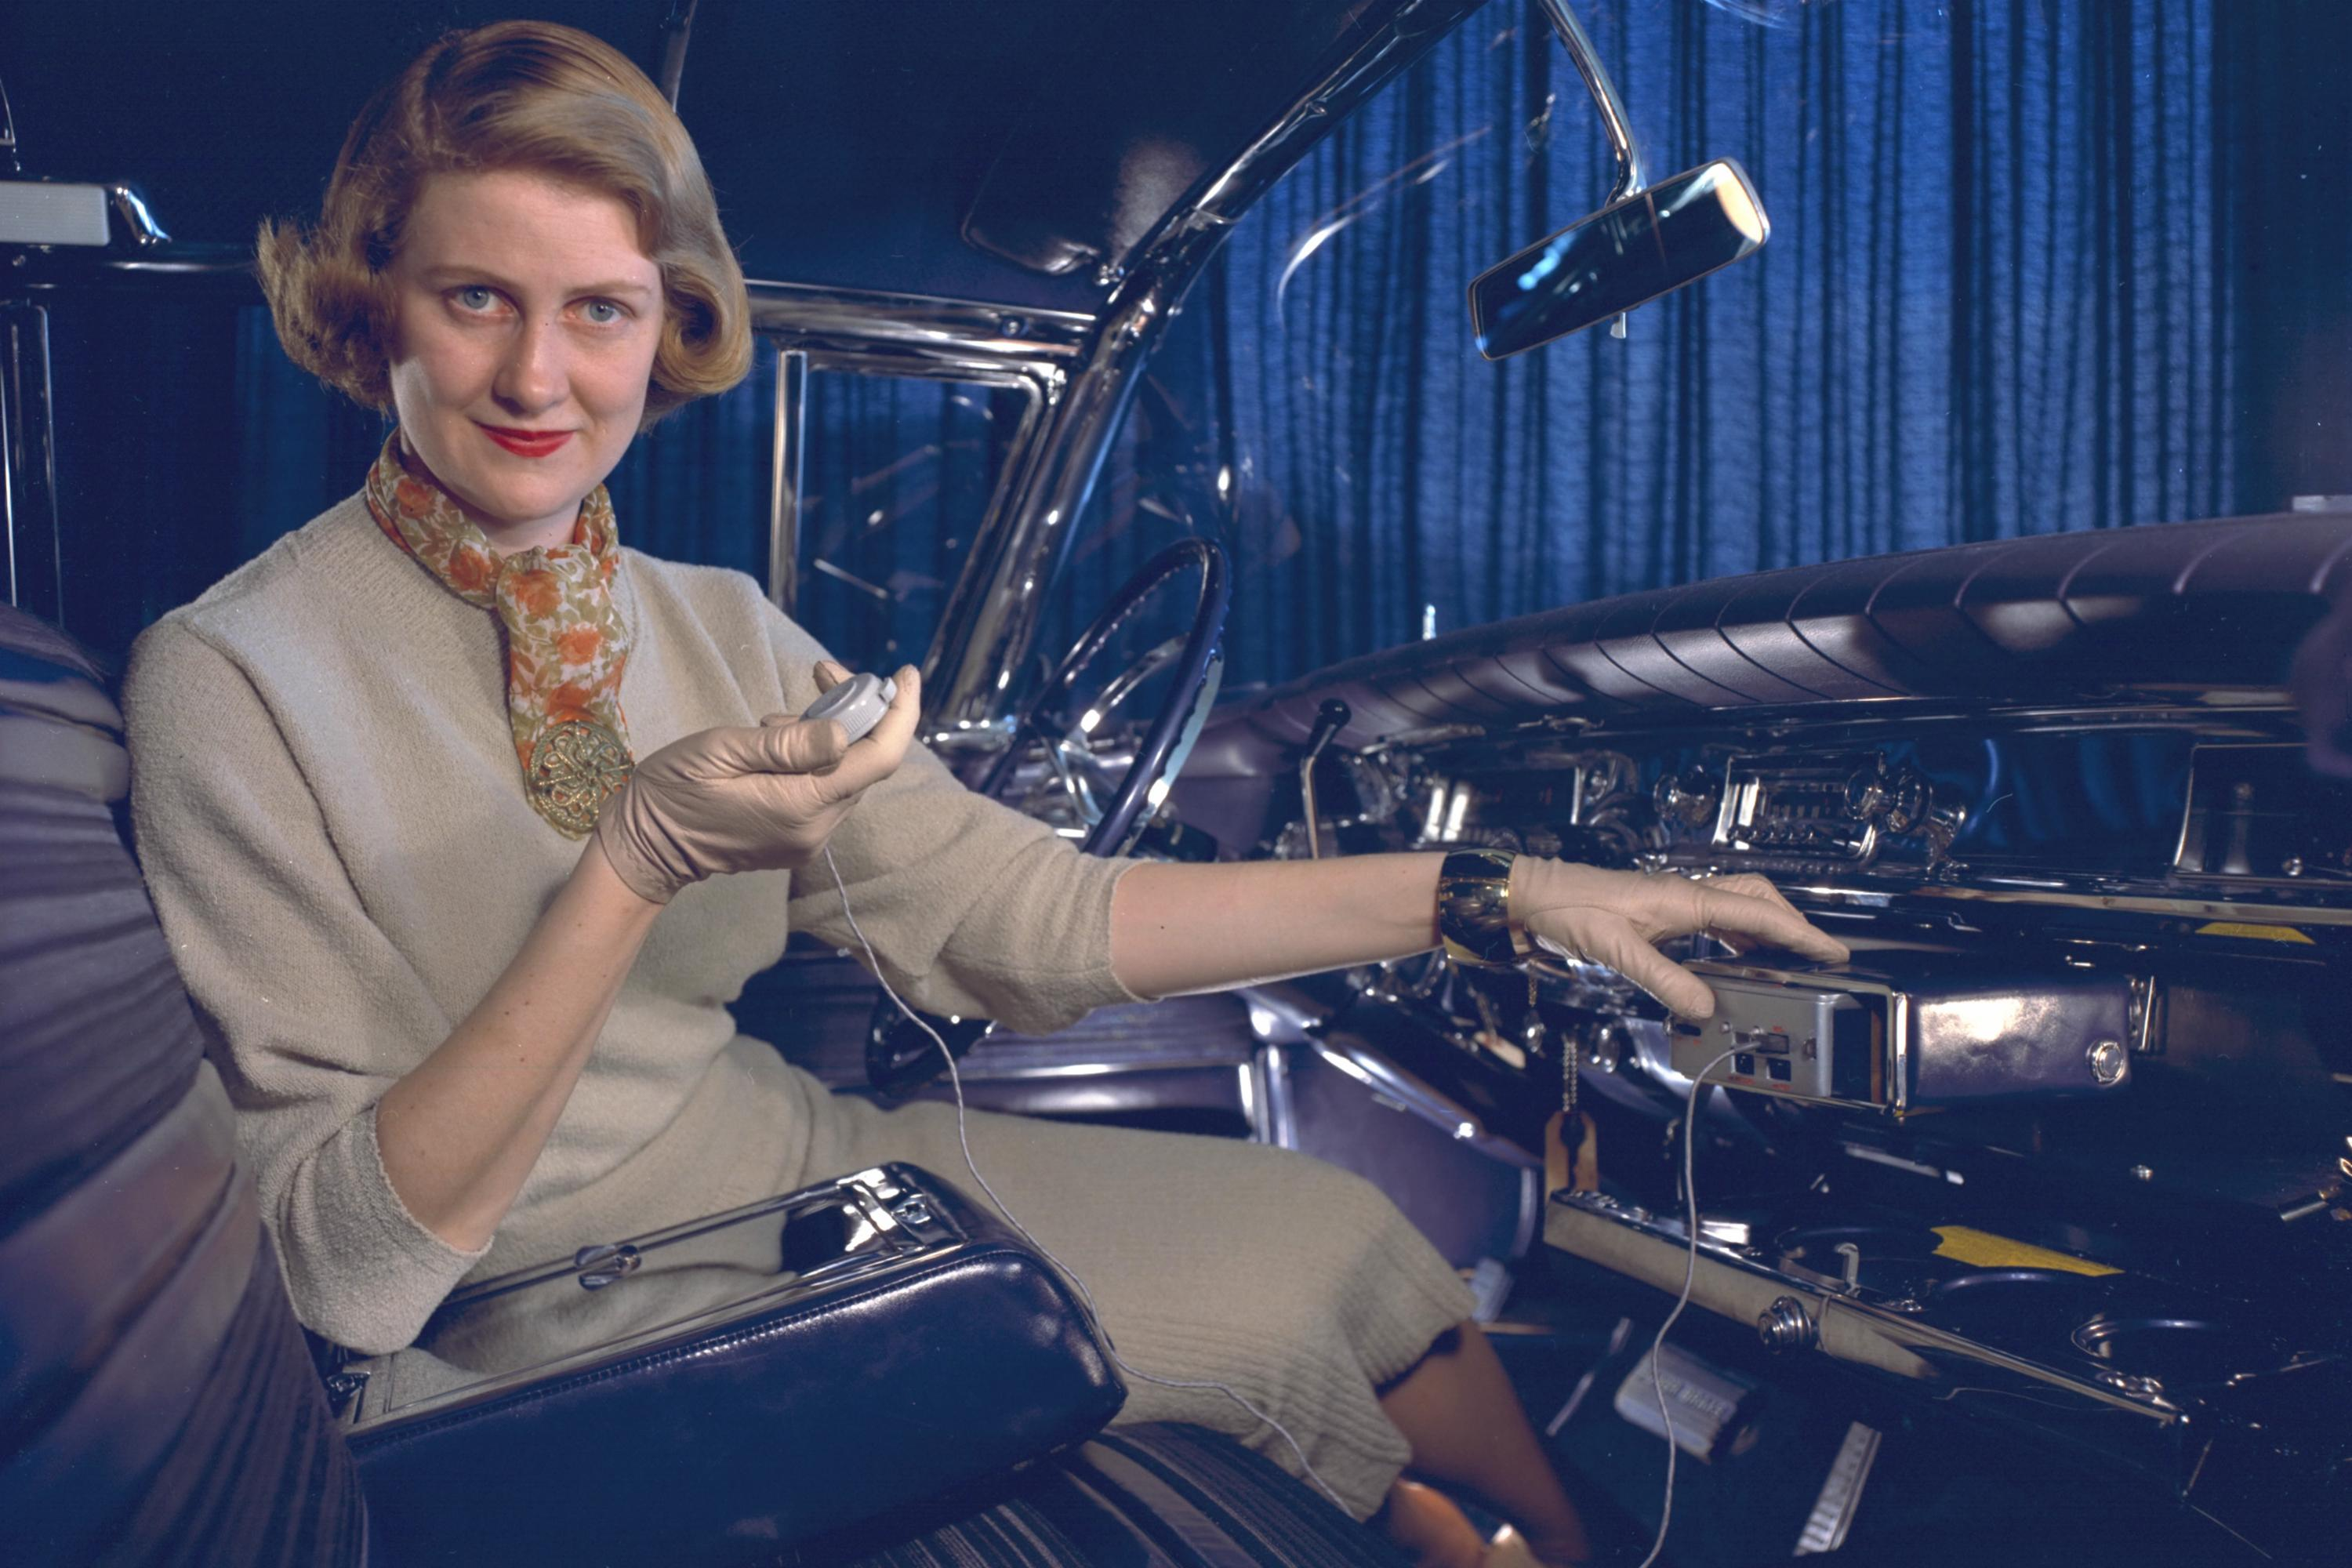 Gm S Damsels Of Design Innovated Car Interiors In The 1950s Artsy